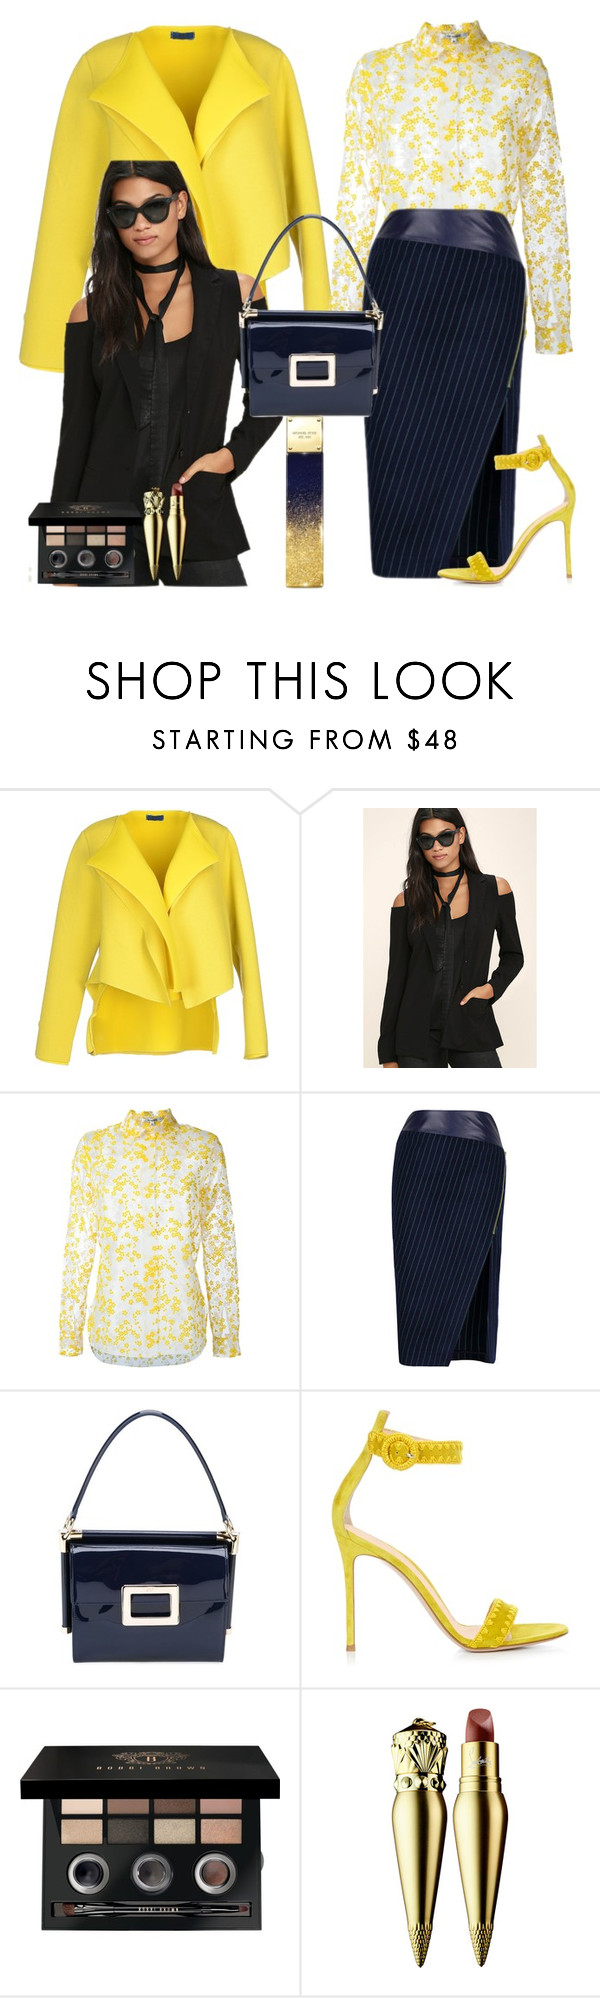 """""""Yellow Blazer"""" by denibrad ❤ liked on Polyvore featuring (212), Rokoko, Carven, Roger Vivier, Gianvito Rossi, Bobbi Brown Cosmetics, Christian Louboutin and Michael Kors"""